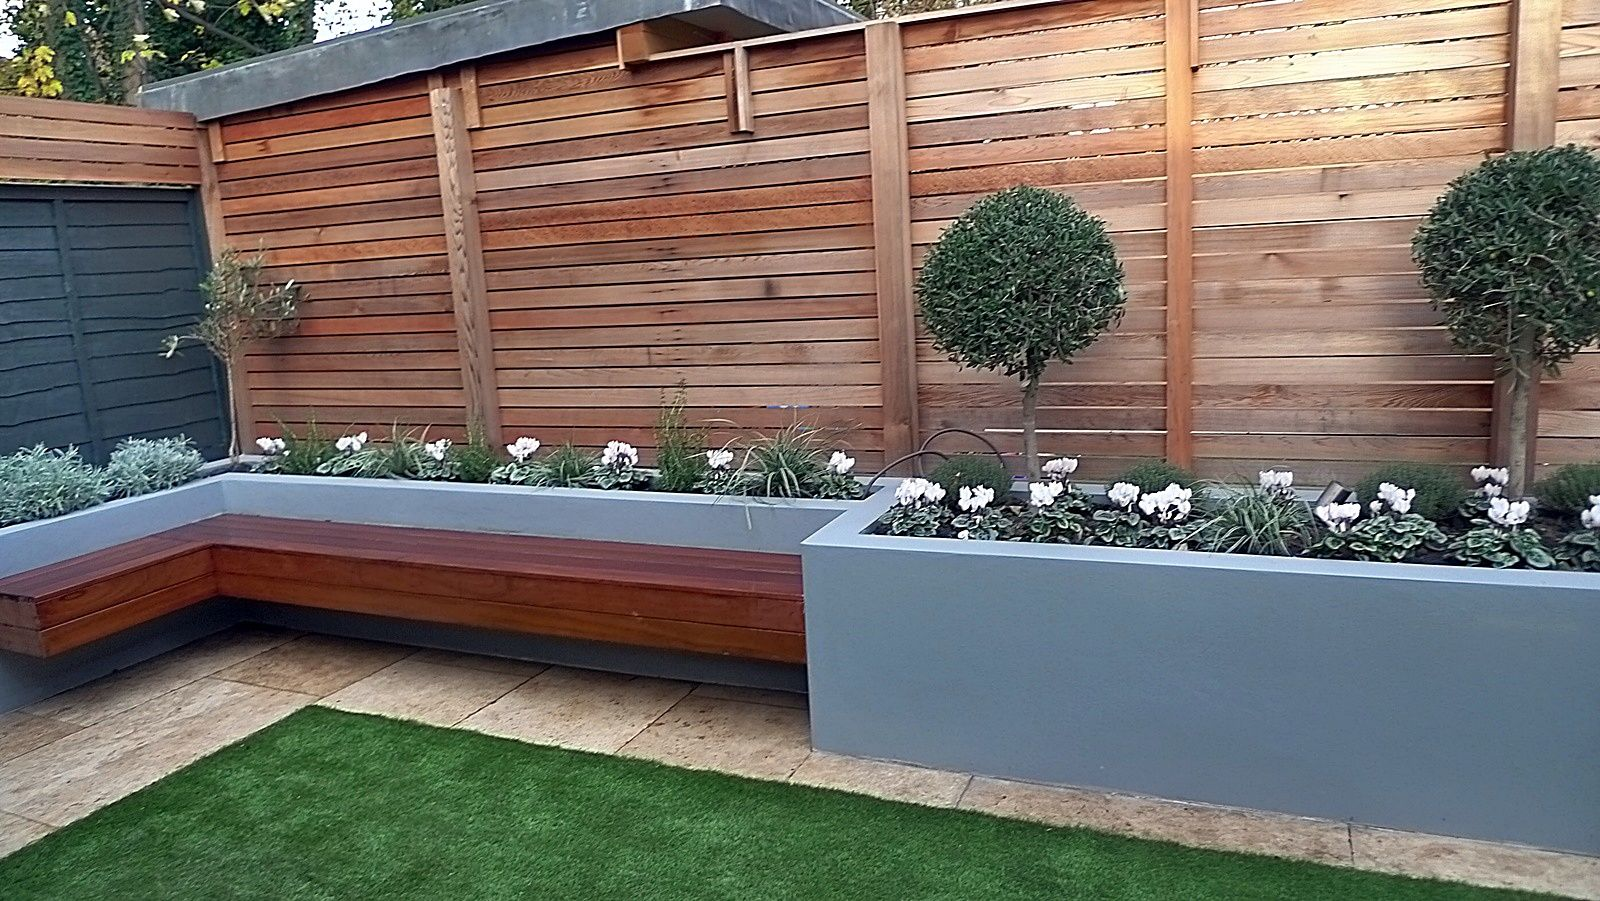 raised flower bed with grass Google Search Back garden